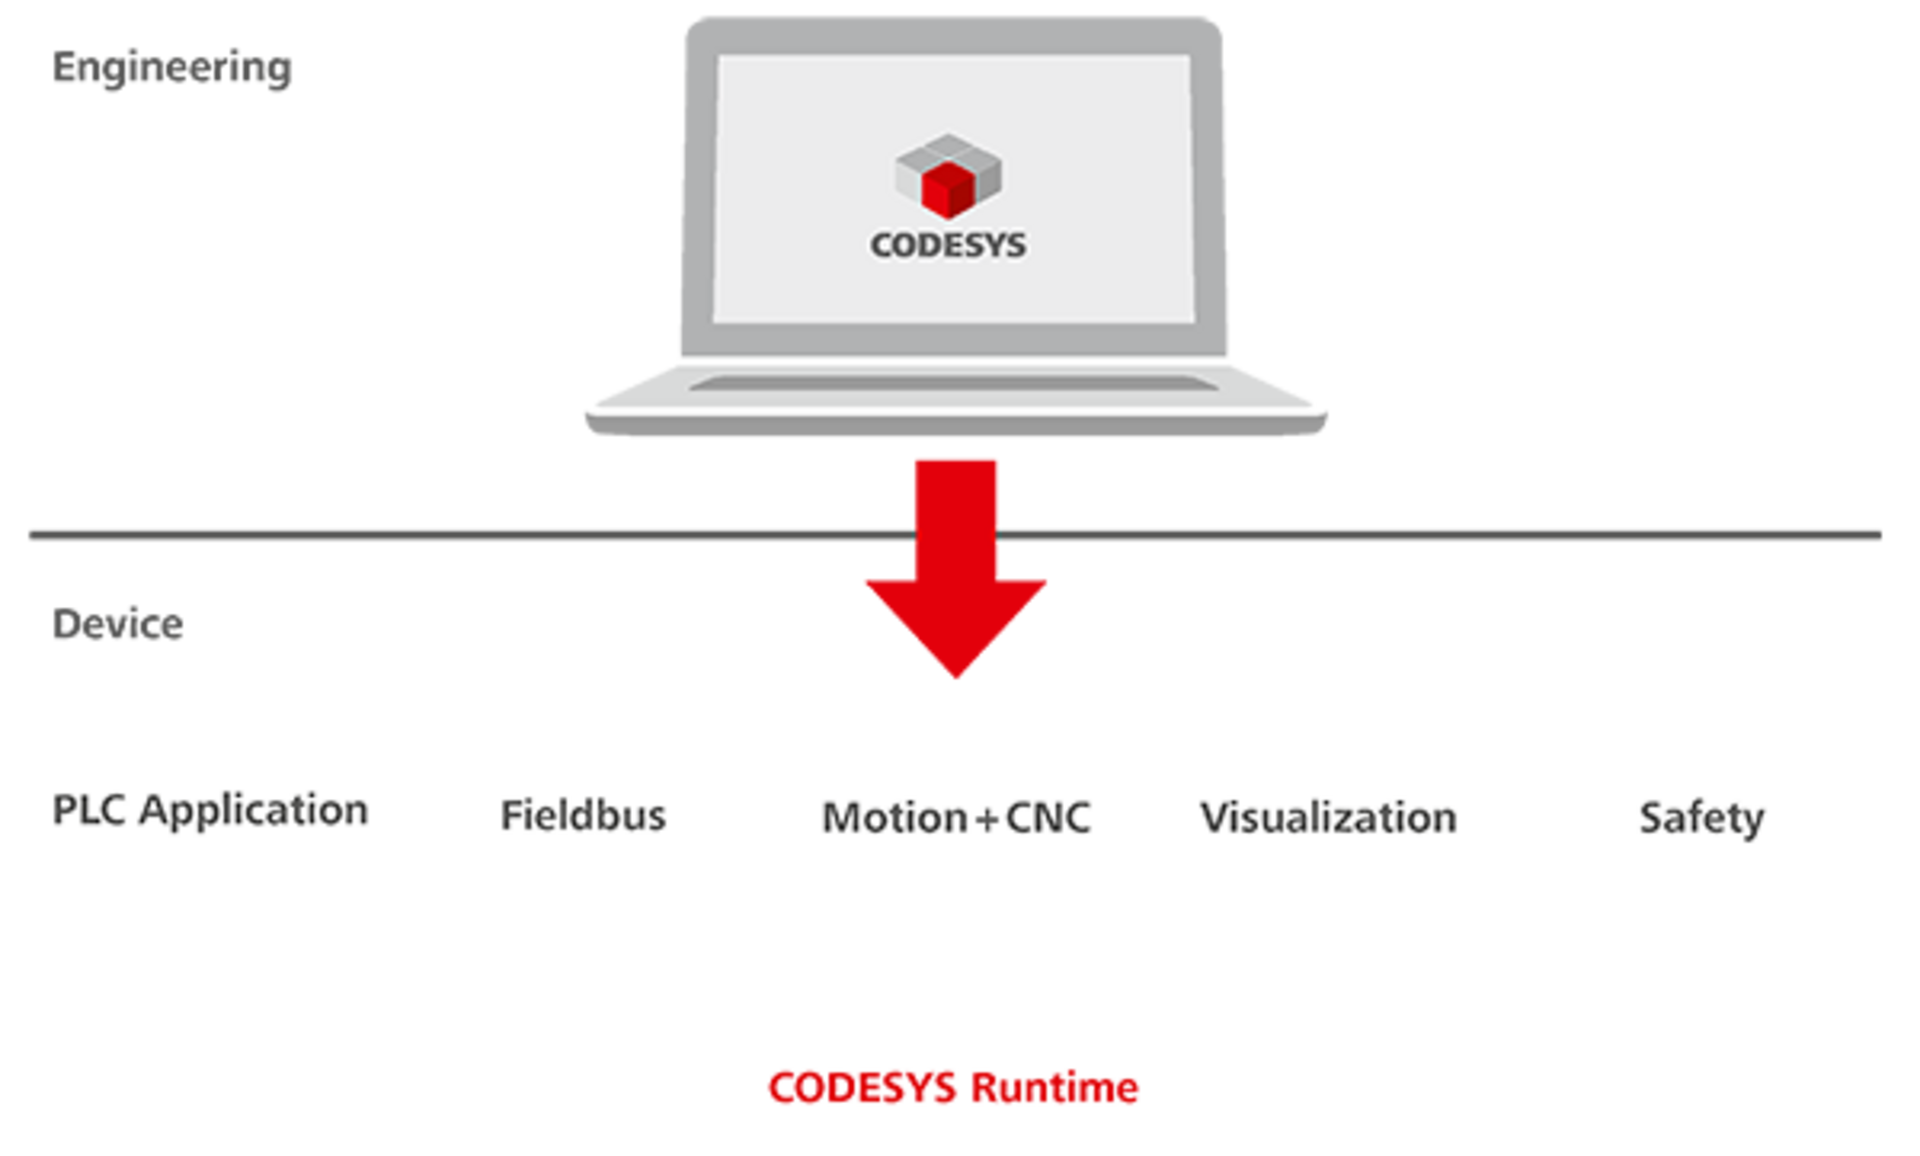 CODESYS Control: Runtime system for IEC 61131-3 PLCs - CODESYS